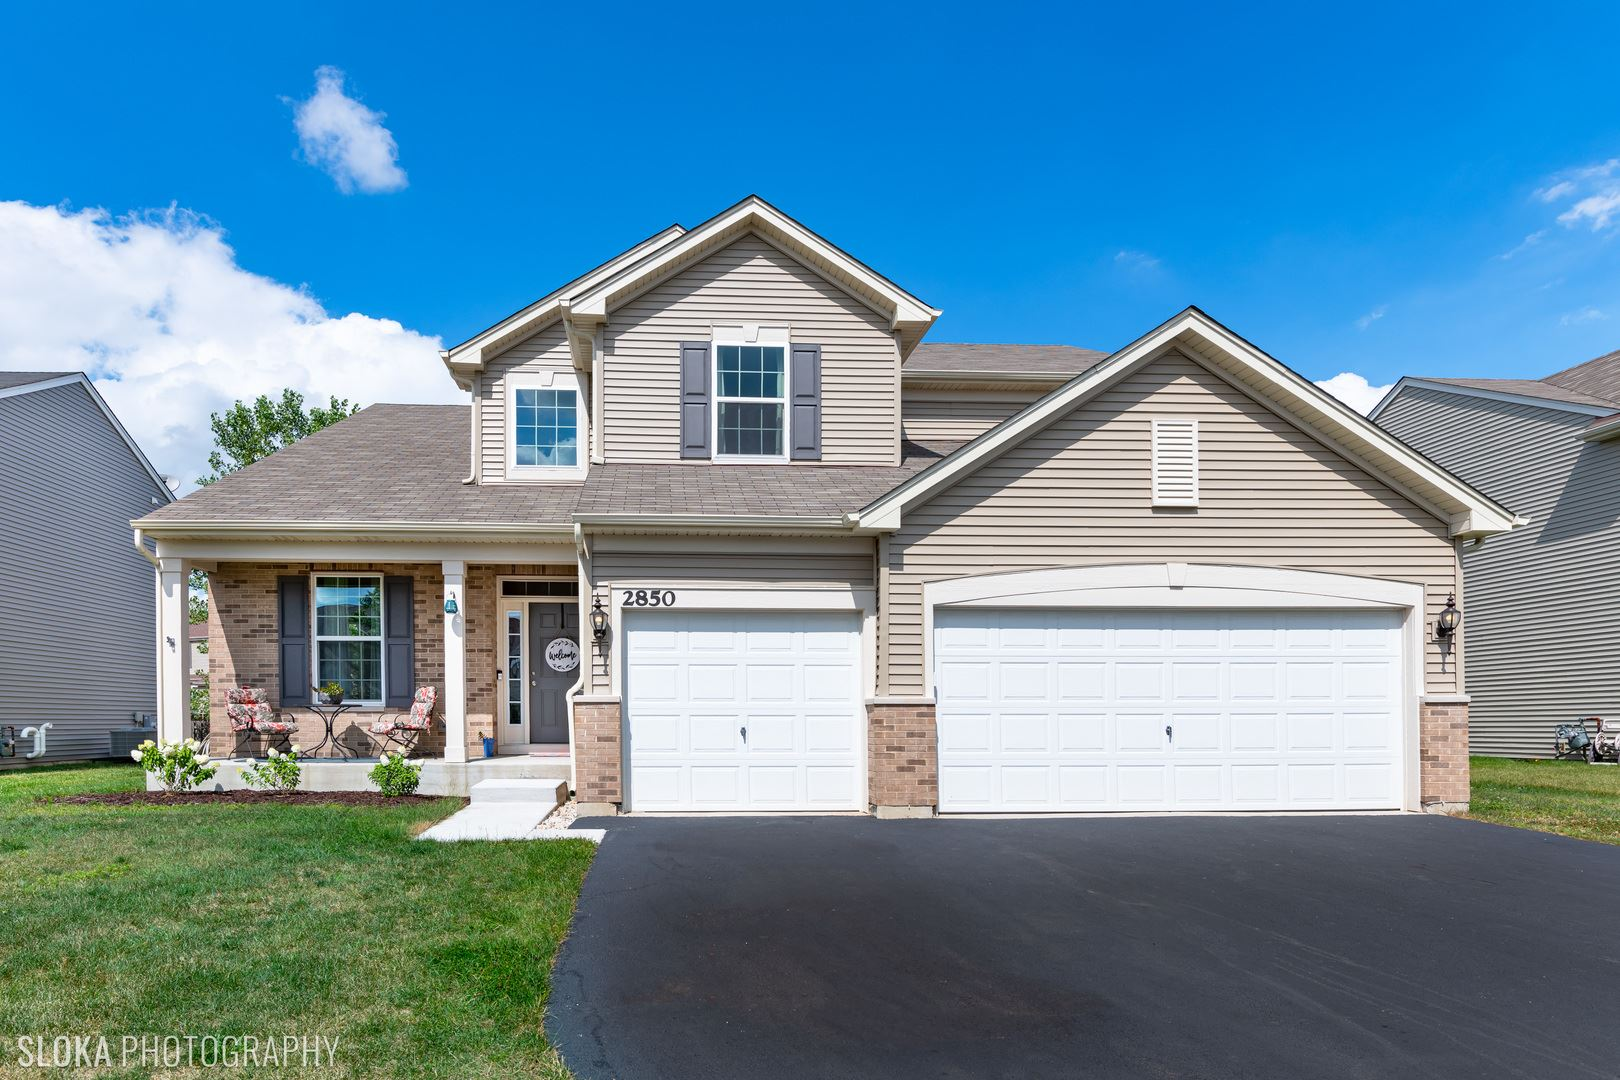 2850 Braeburn Way, Woodstock, IL 60098 - #: 10784578